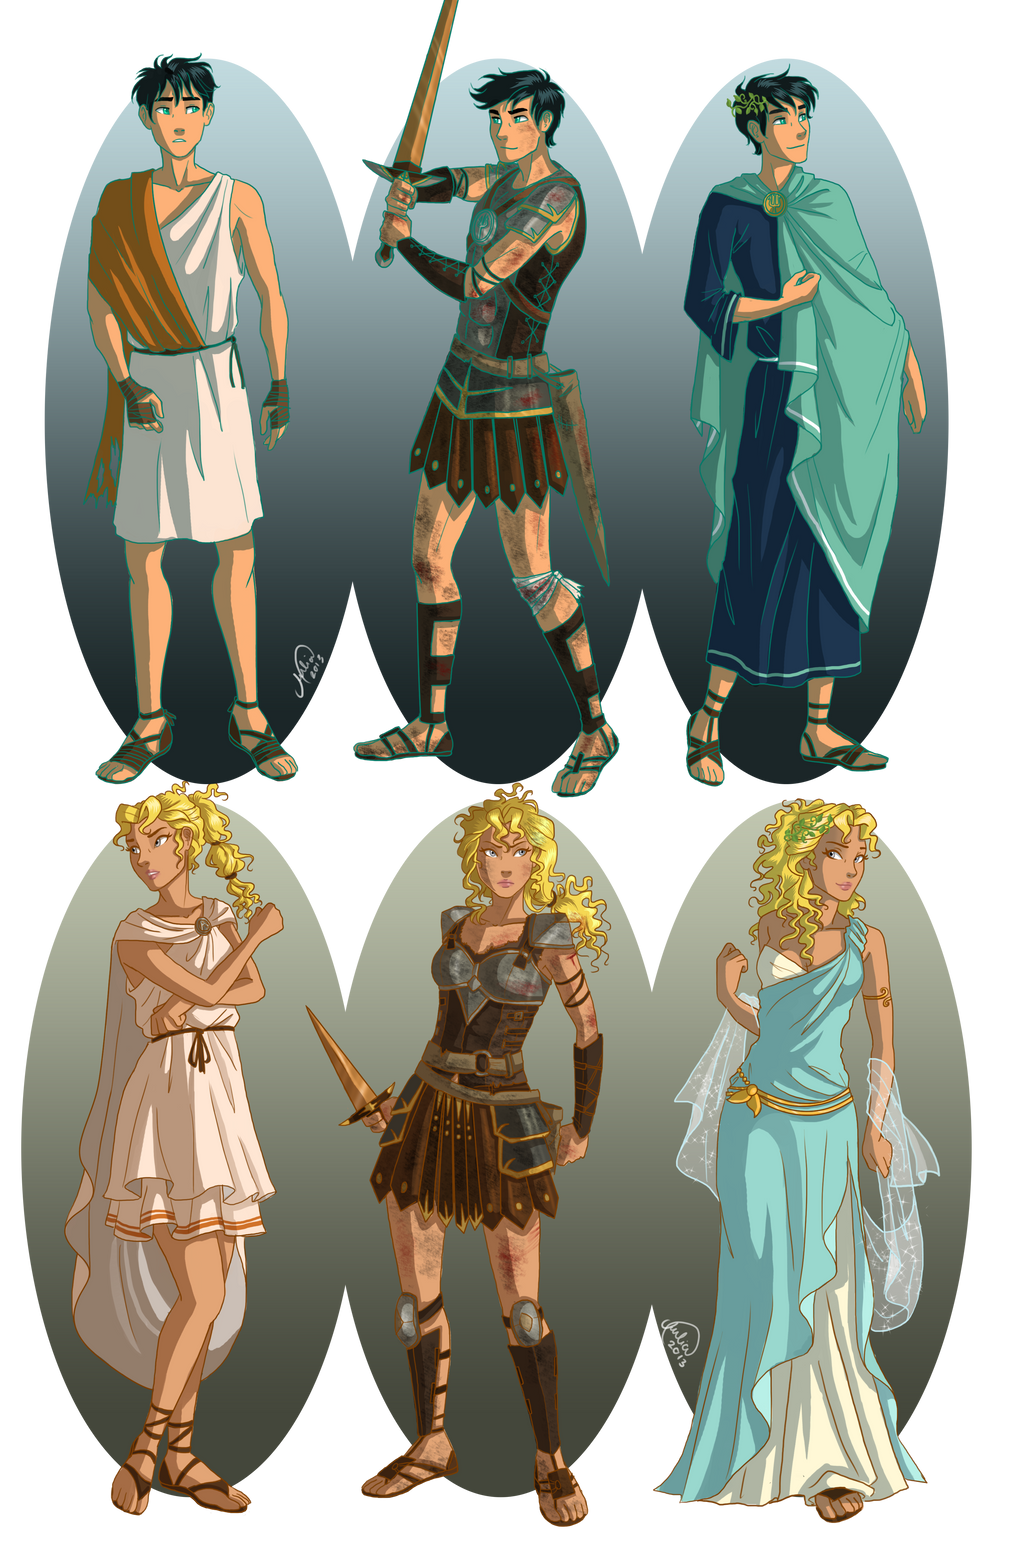 Ancient Greece by juliajm15